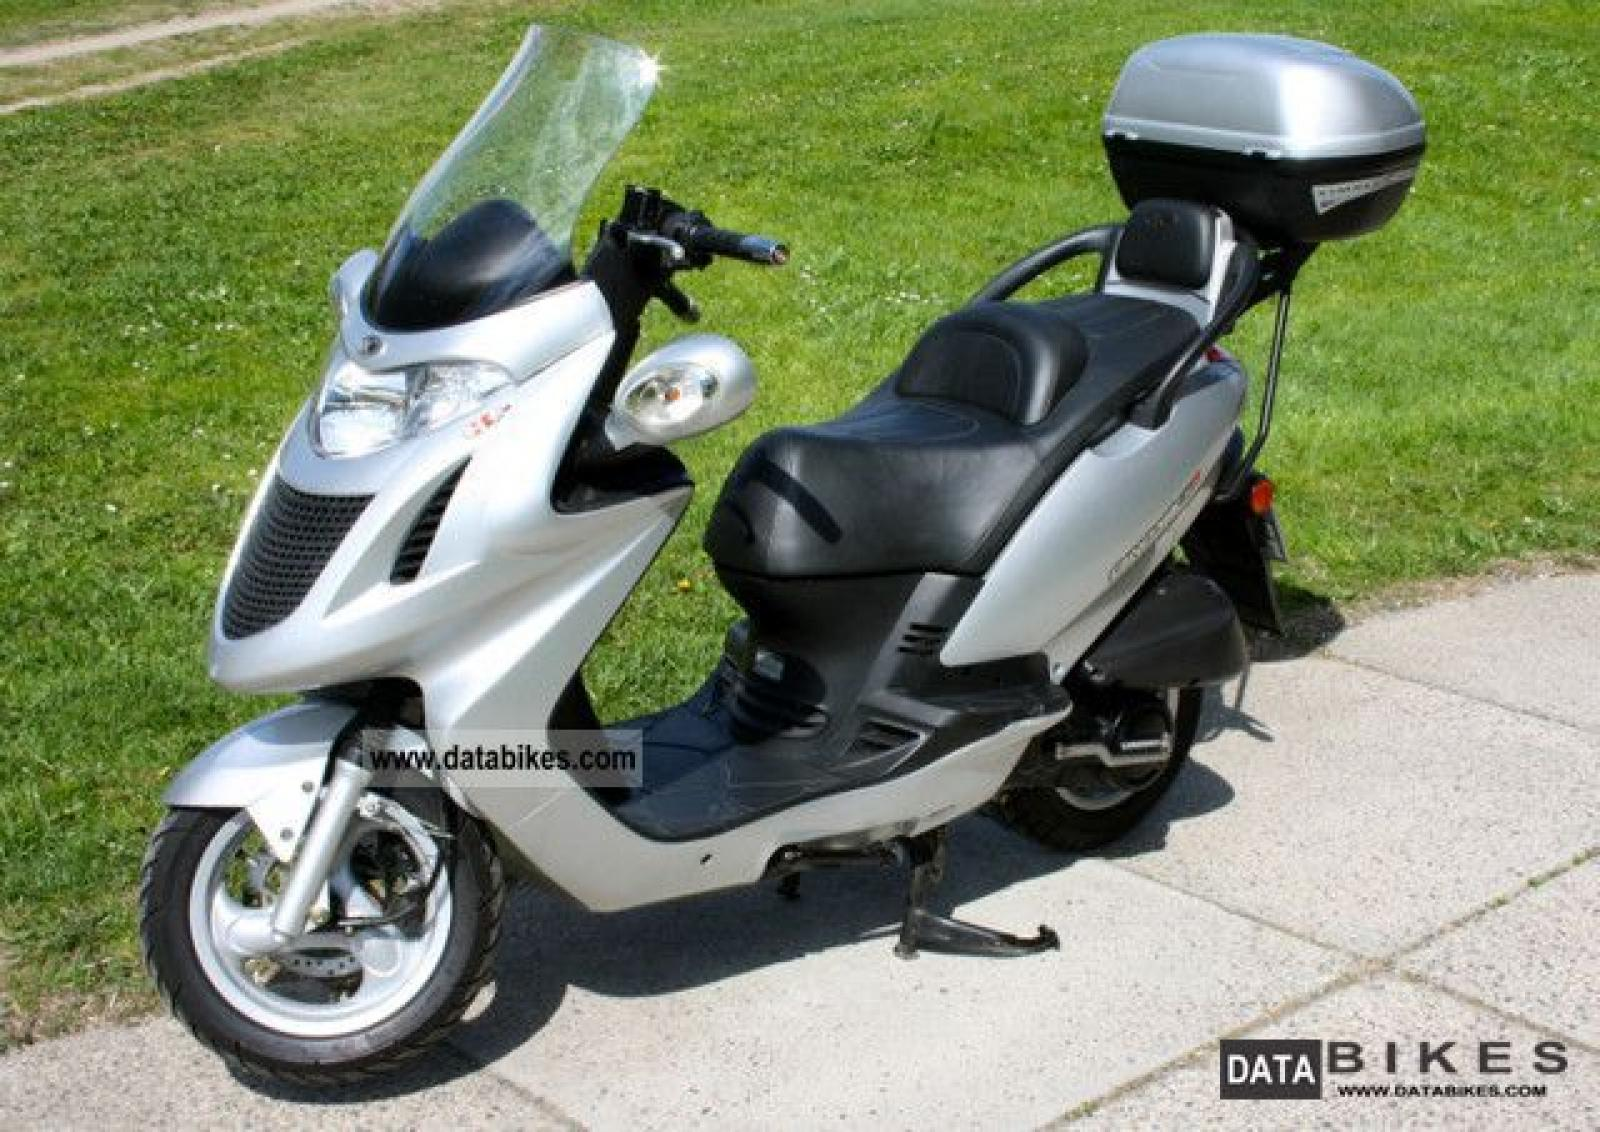 Kymco dink photo - 3